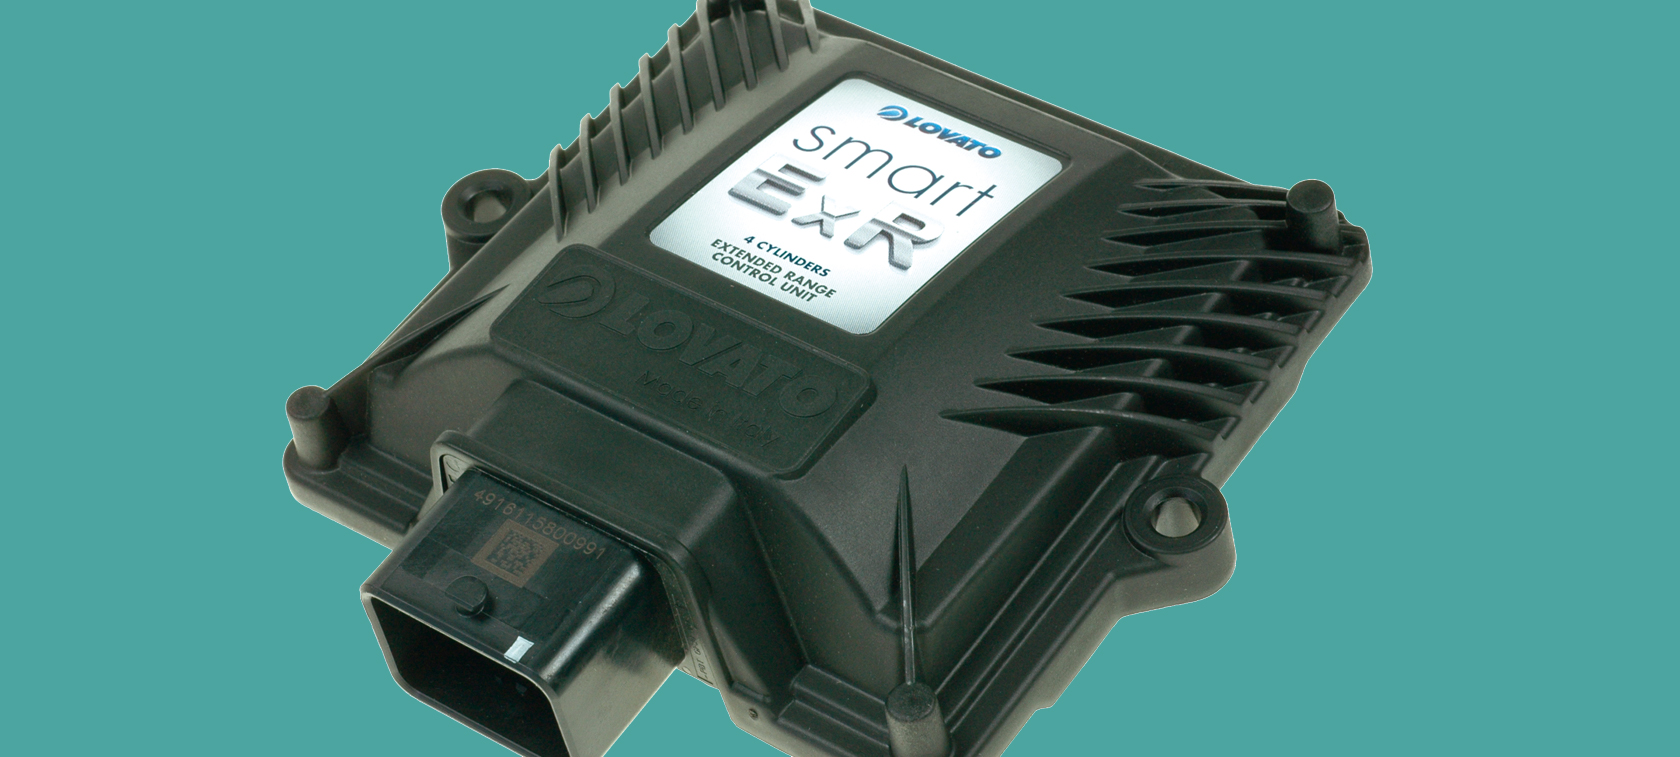 Lovato Smart ExR - a facelifted ECU